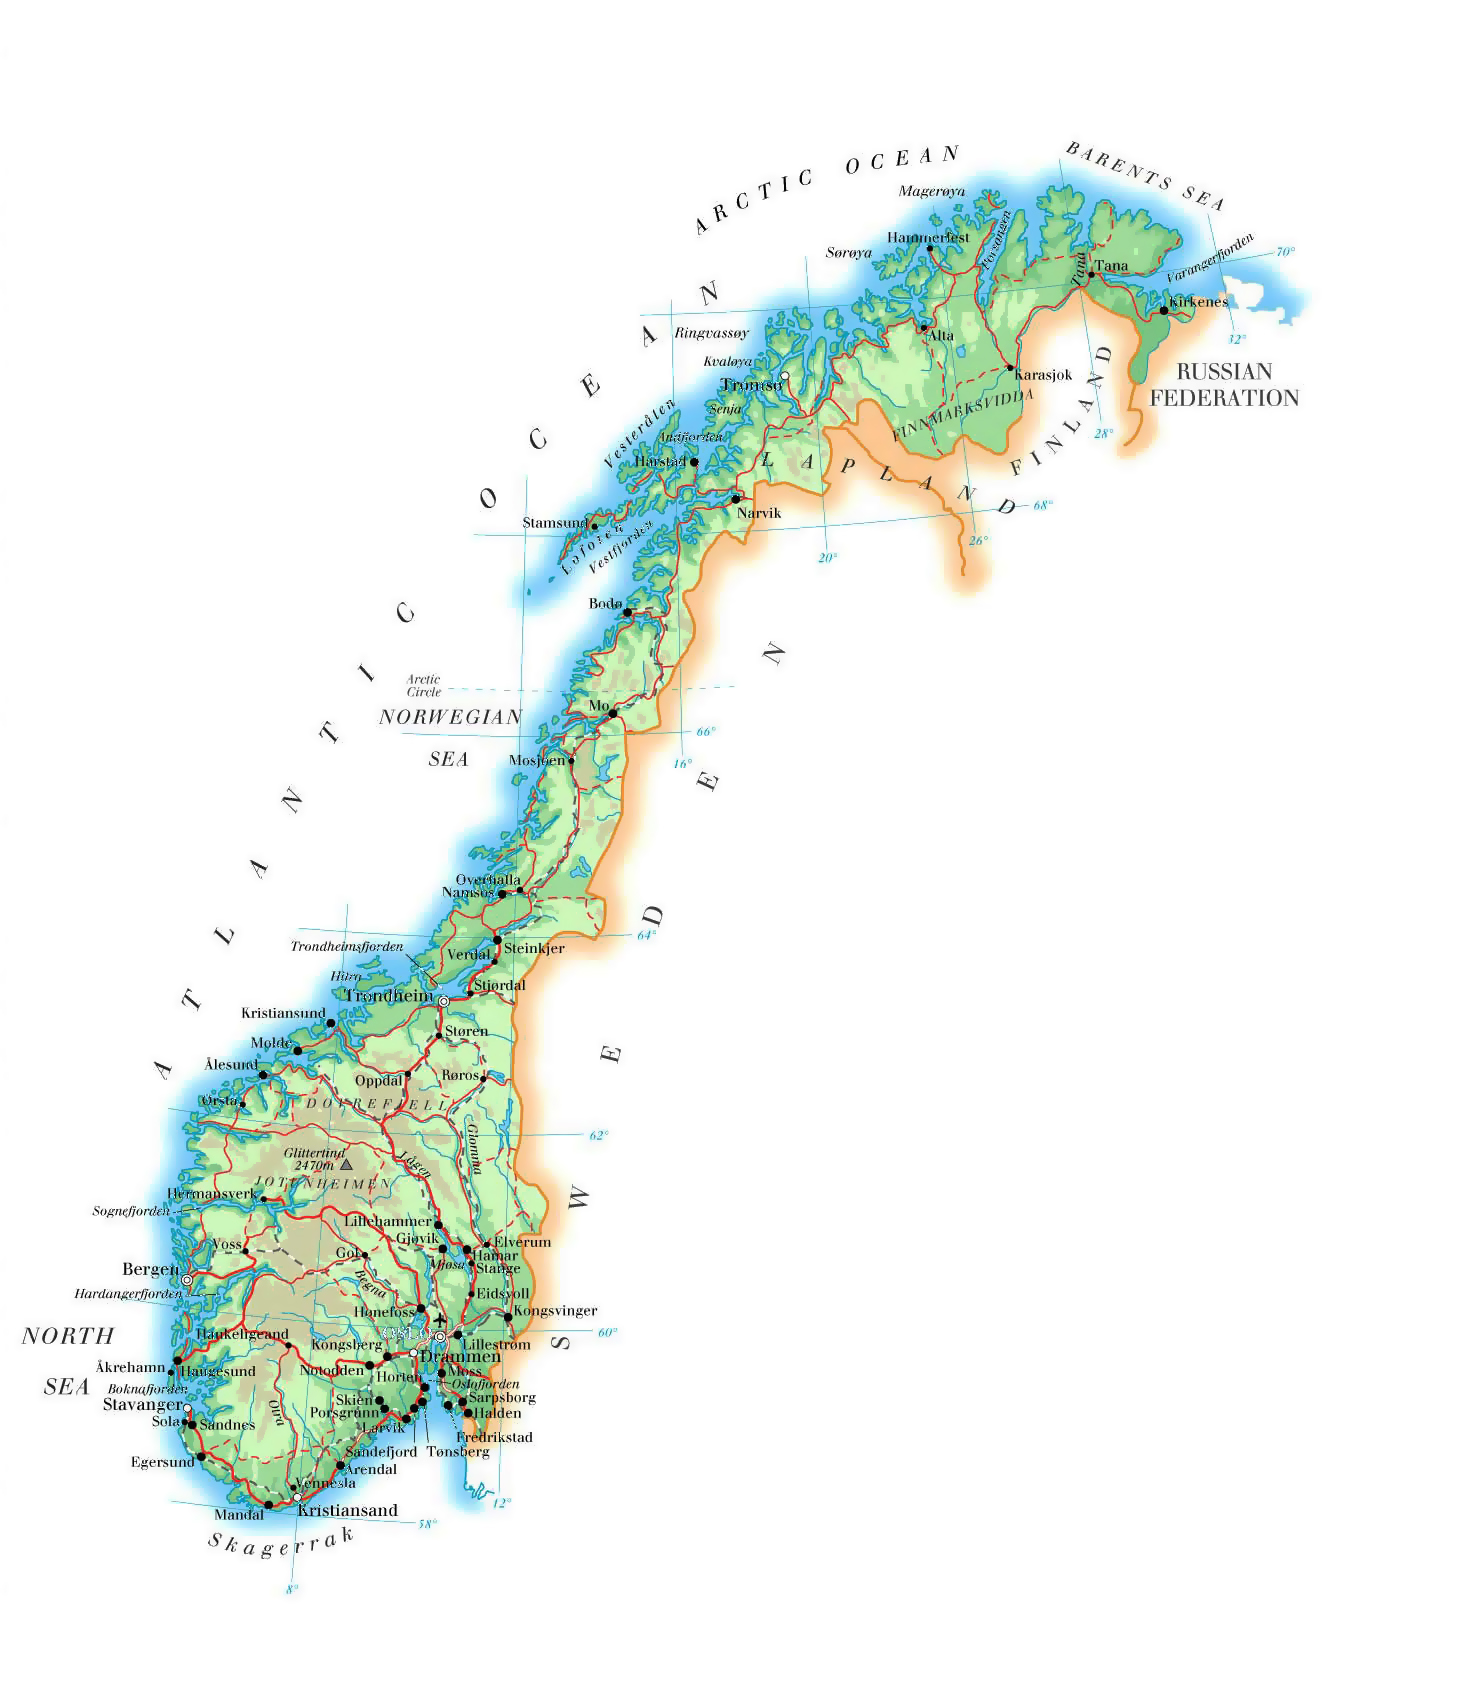 Elevation Map Of Norway With Roads Major Cities And Airports - Norway elevation map